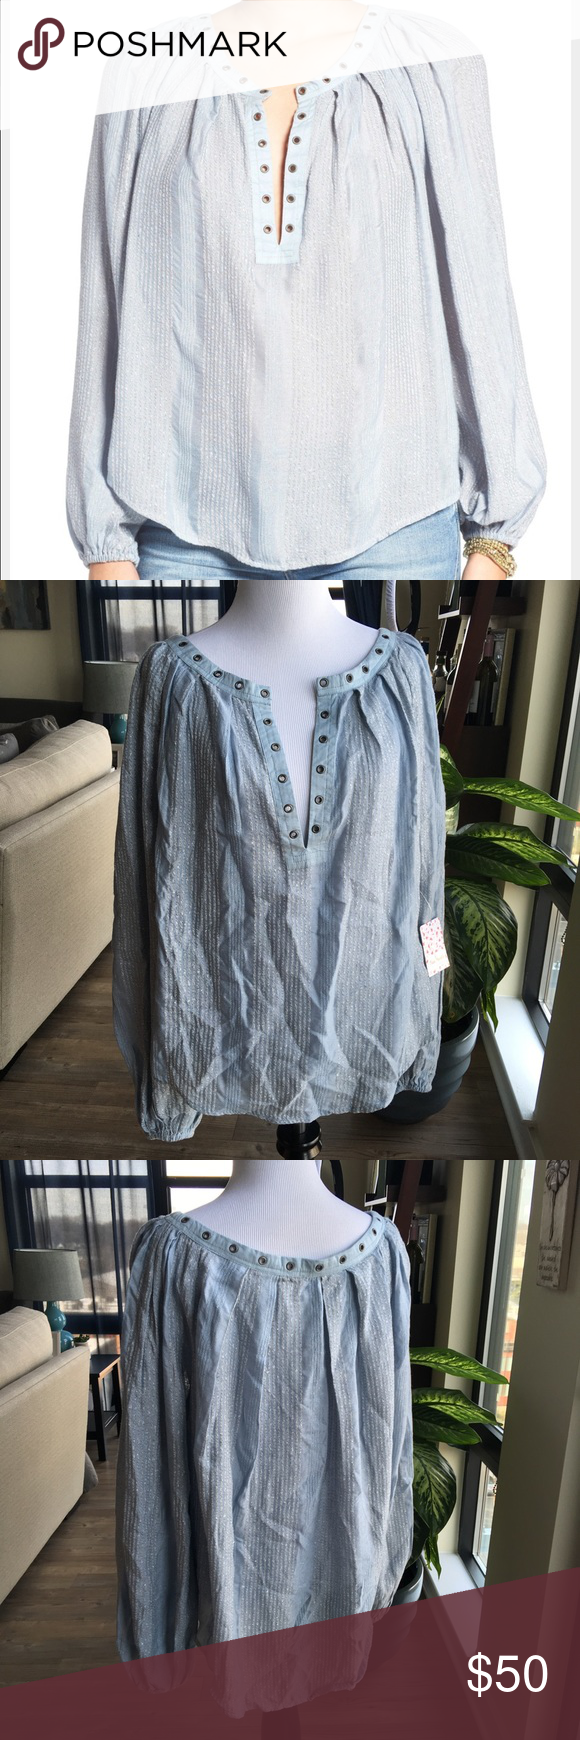 """NWT Free People 'Against All Odds' Blouse NWT Free People 'Against All Odds' Women's Blouse Color: Blue Combo Size Small No flaws, new condition non-smoking home  About This Item Details - Split neck - Long sleeves with banded cuffs - Grommet trim - Allover stripes - Approx. 27"""" length - Imported Fiber Content 81% rayon, 19% cotton Care Machine wash cold Additional Info Fit: this style fits true to size. Free People Tops Blouses"""